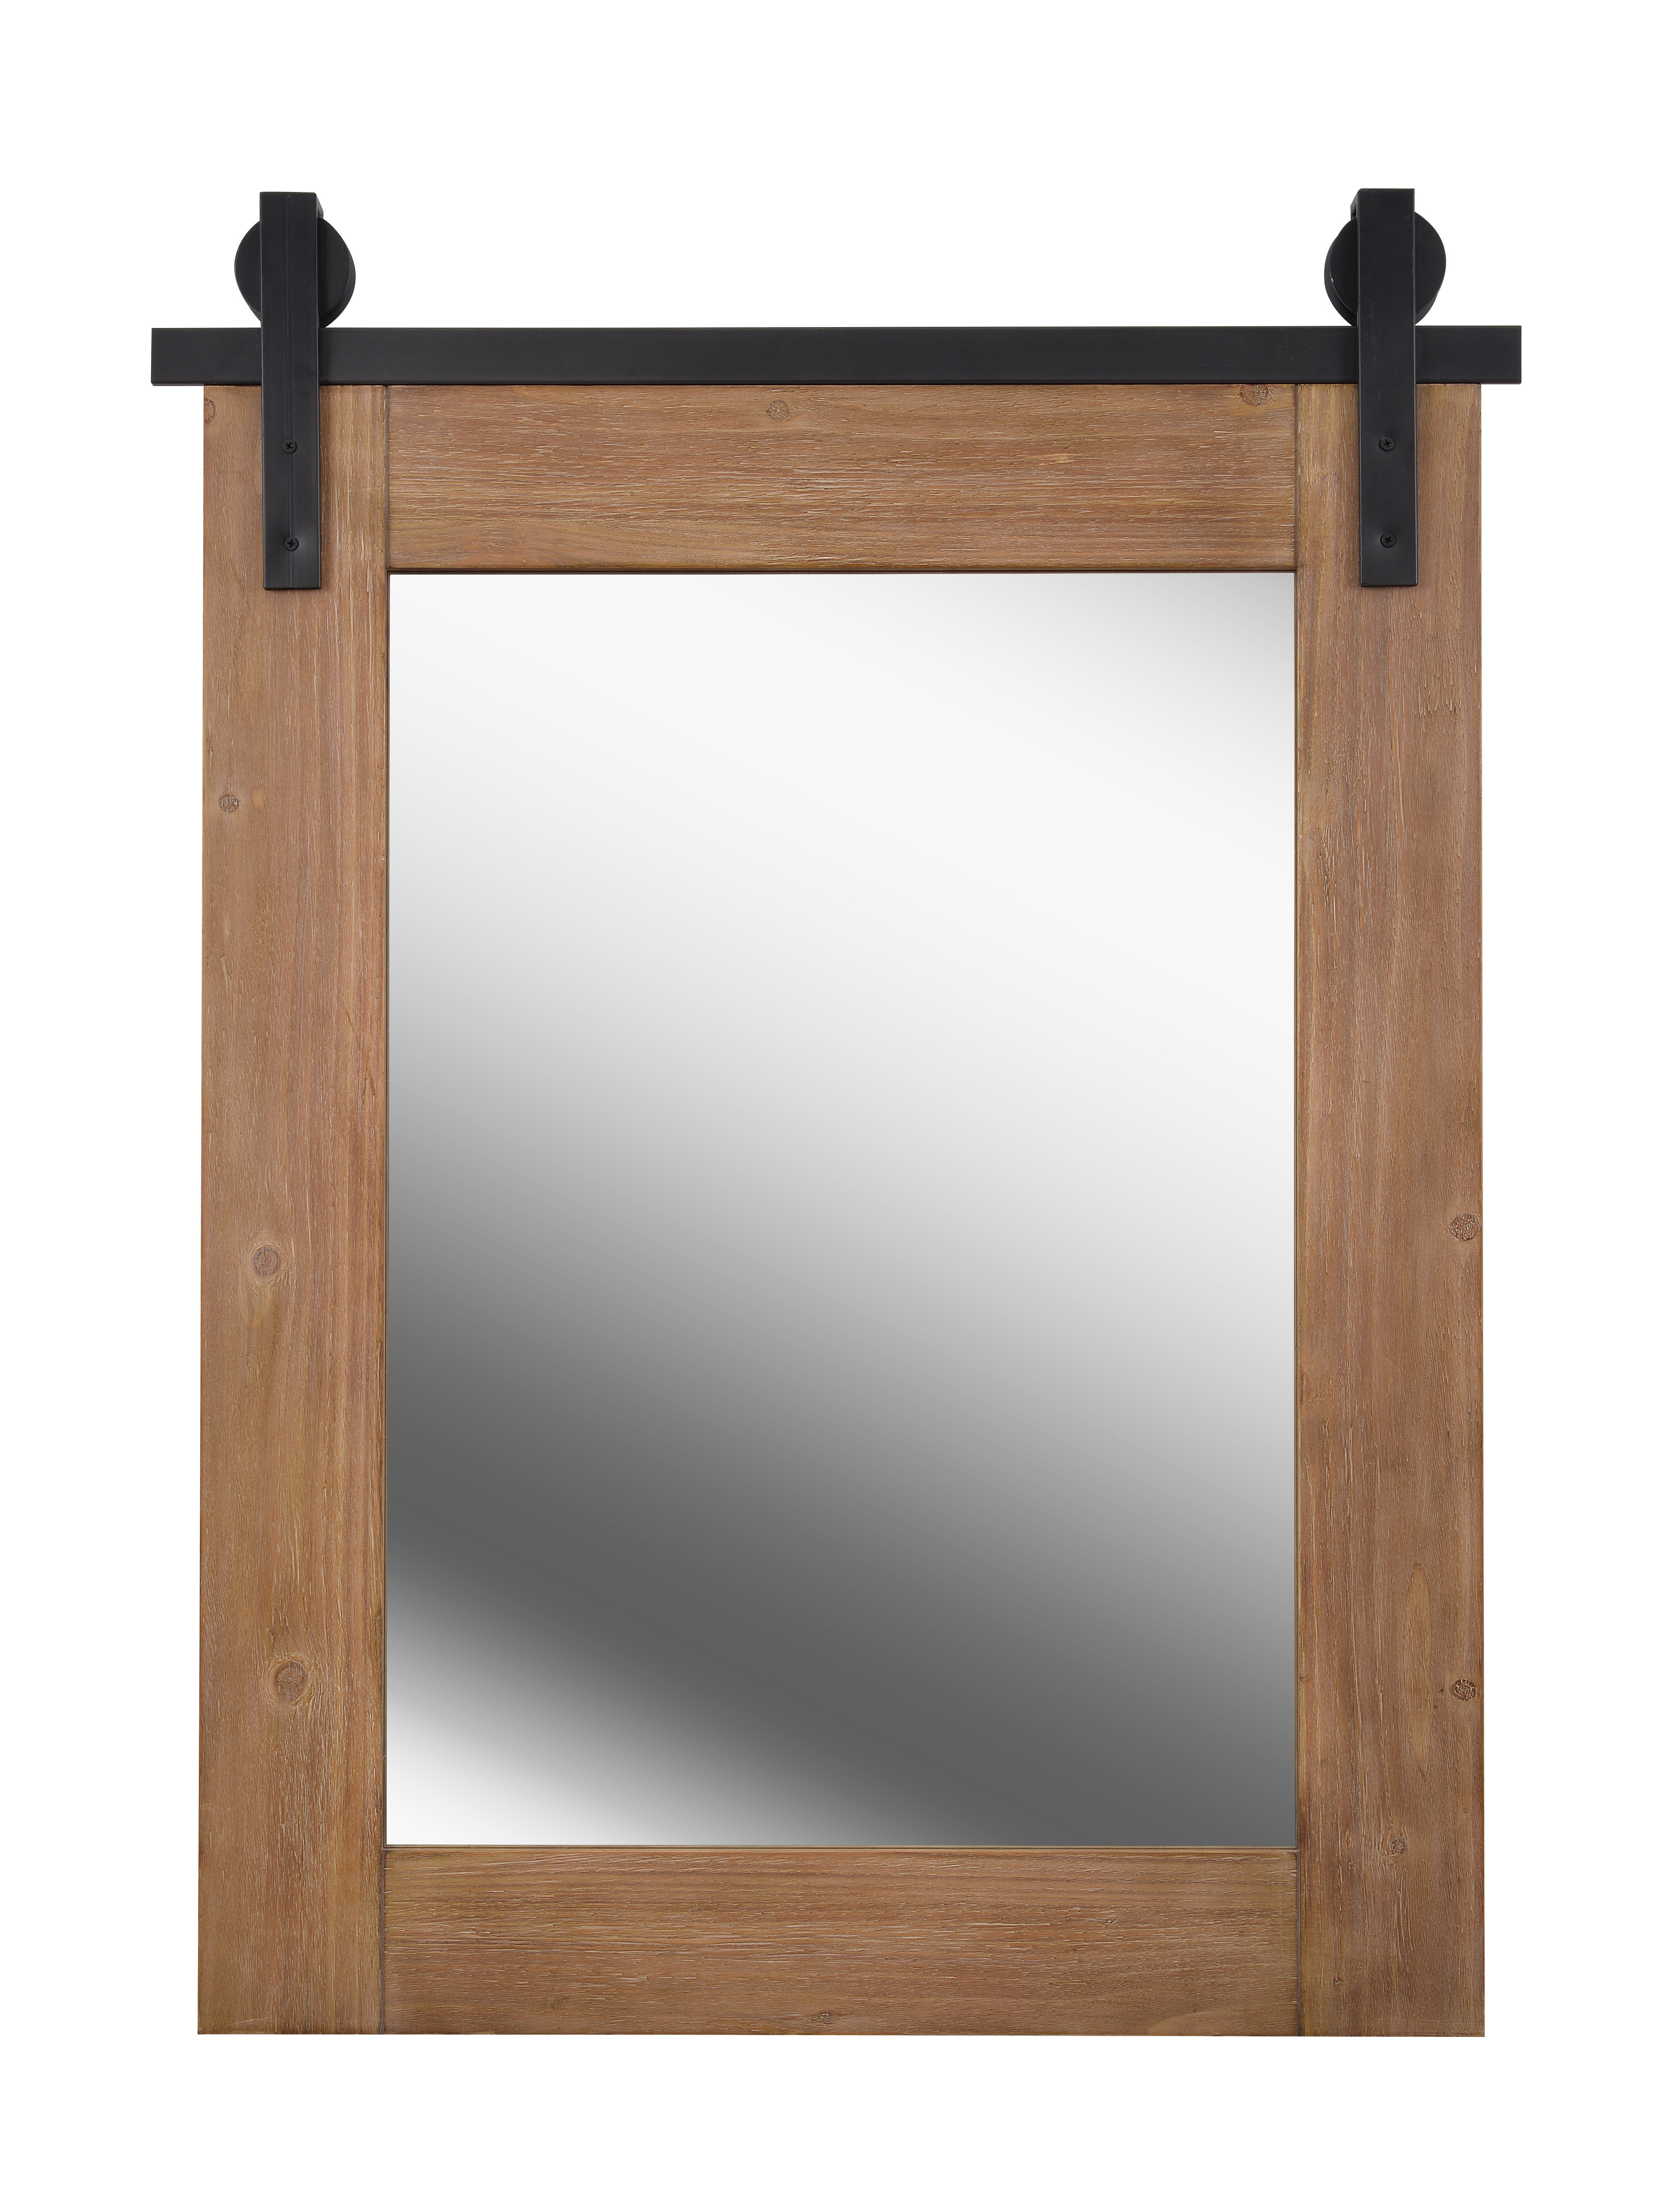 Widely Used Berinhard Accent Mirrors With Regard To Robson Accent Mirror (View 5 of 20)